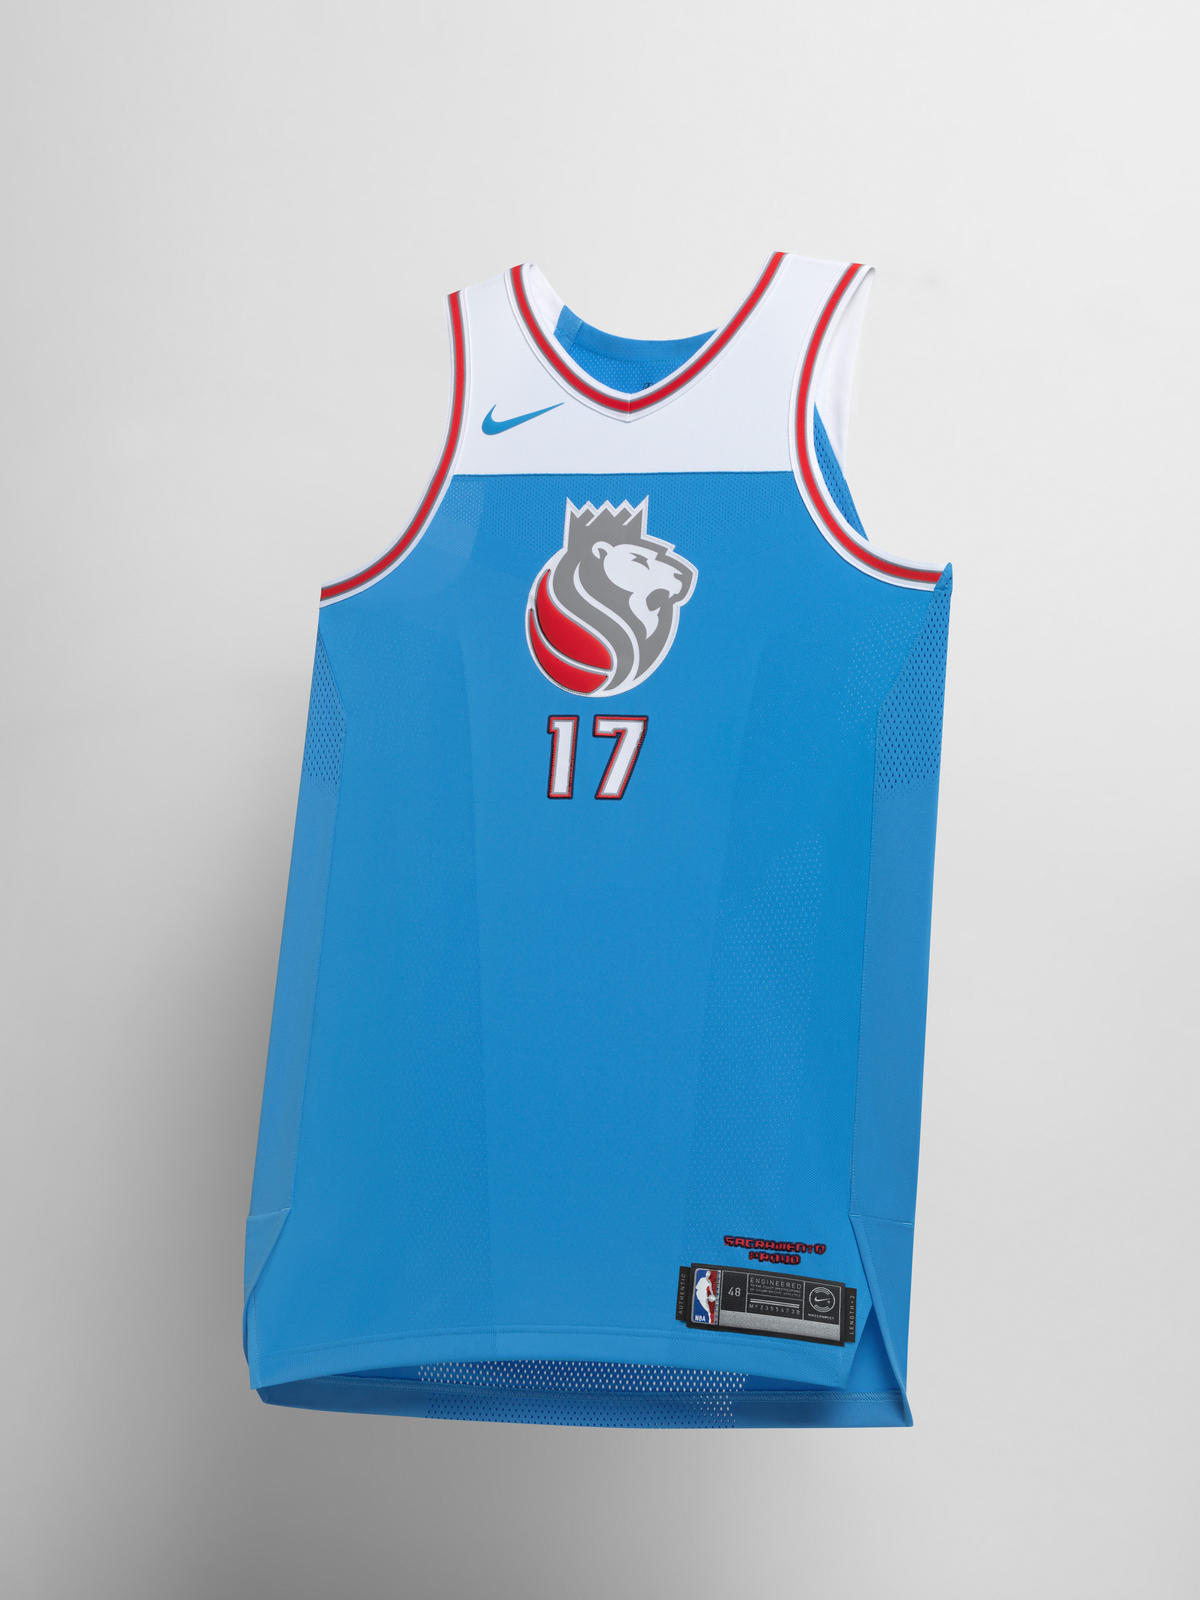 397507cdb6d Nike Unveils New NBA City Edition Jerseys 22 - WearTesters